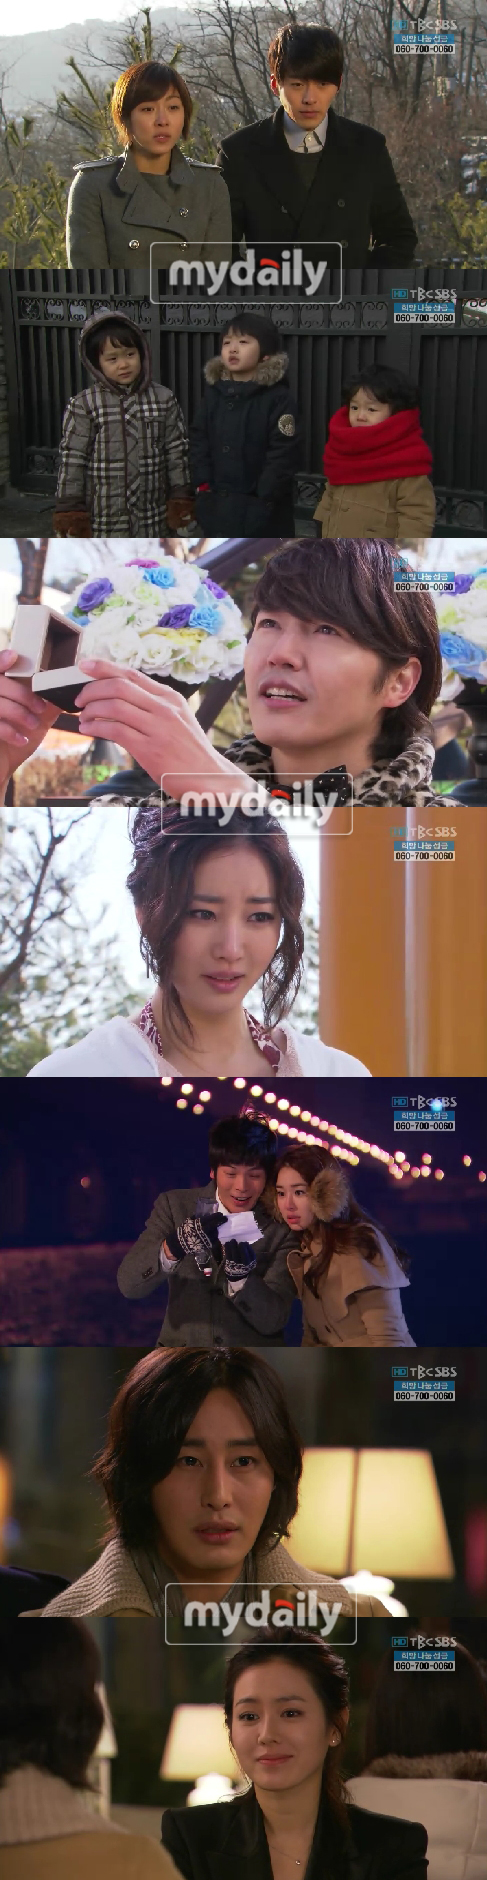 Spoiler Secret Garden Hyeon Bin Ha Ji Won 39 Happy: better homes and gardens episode last night